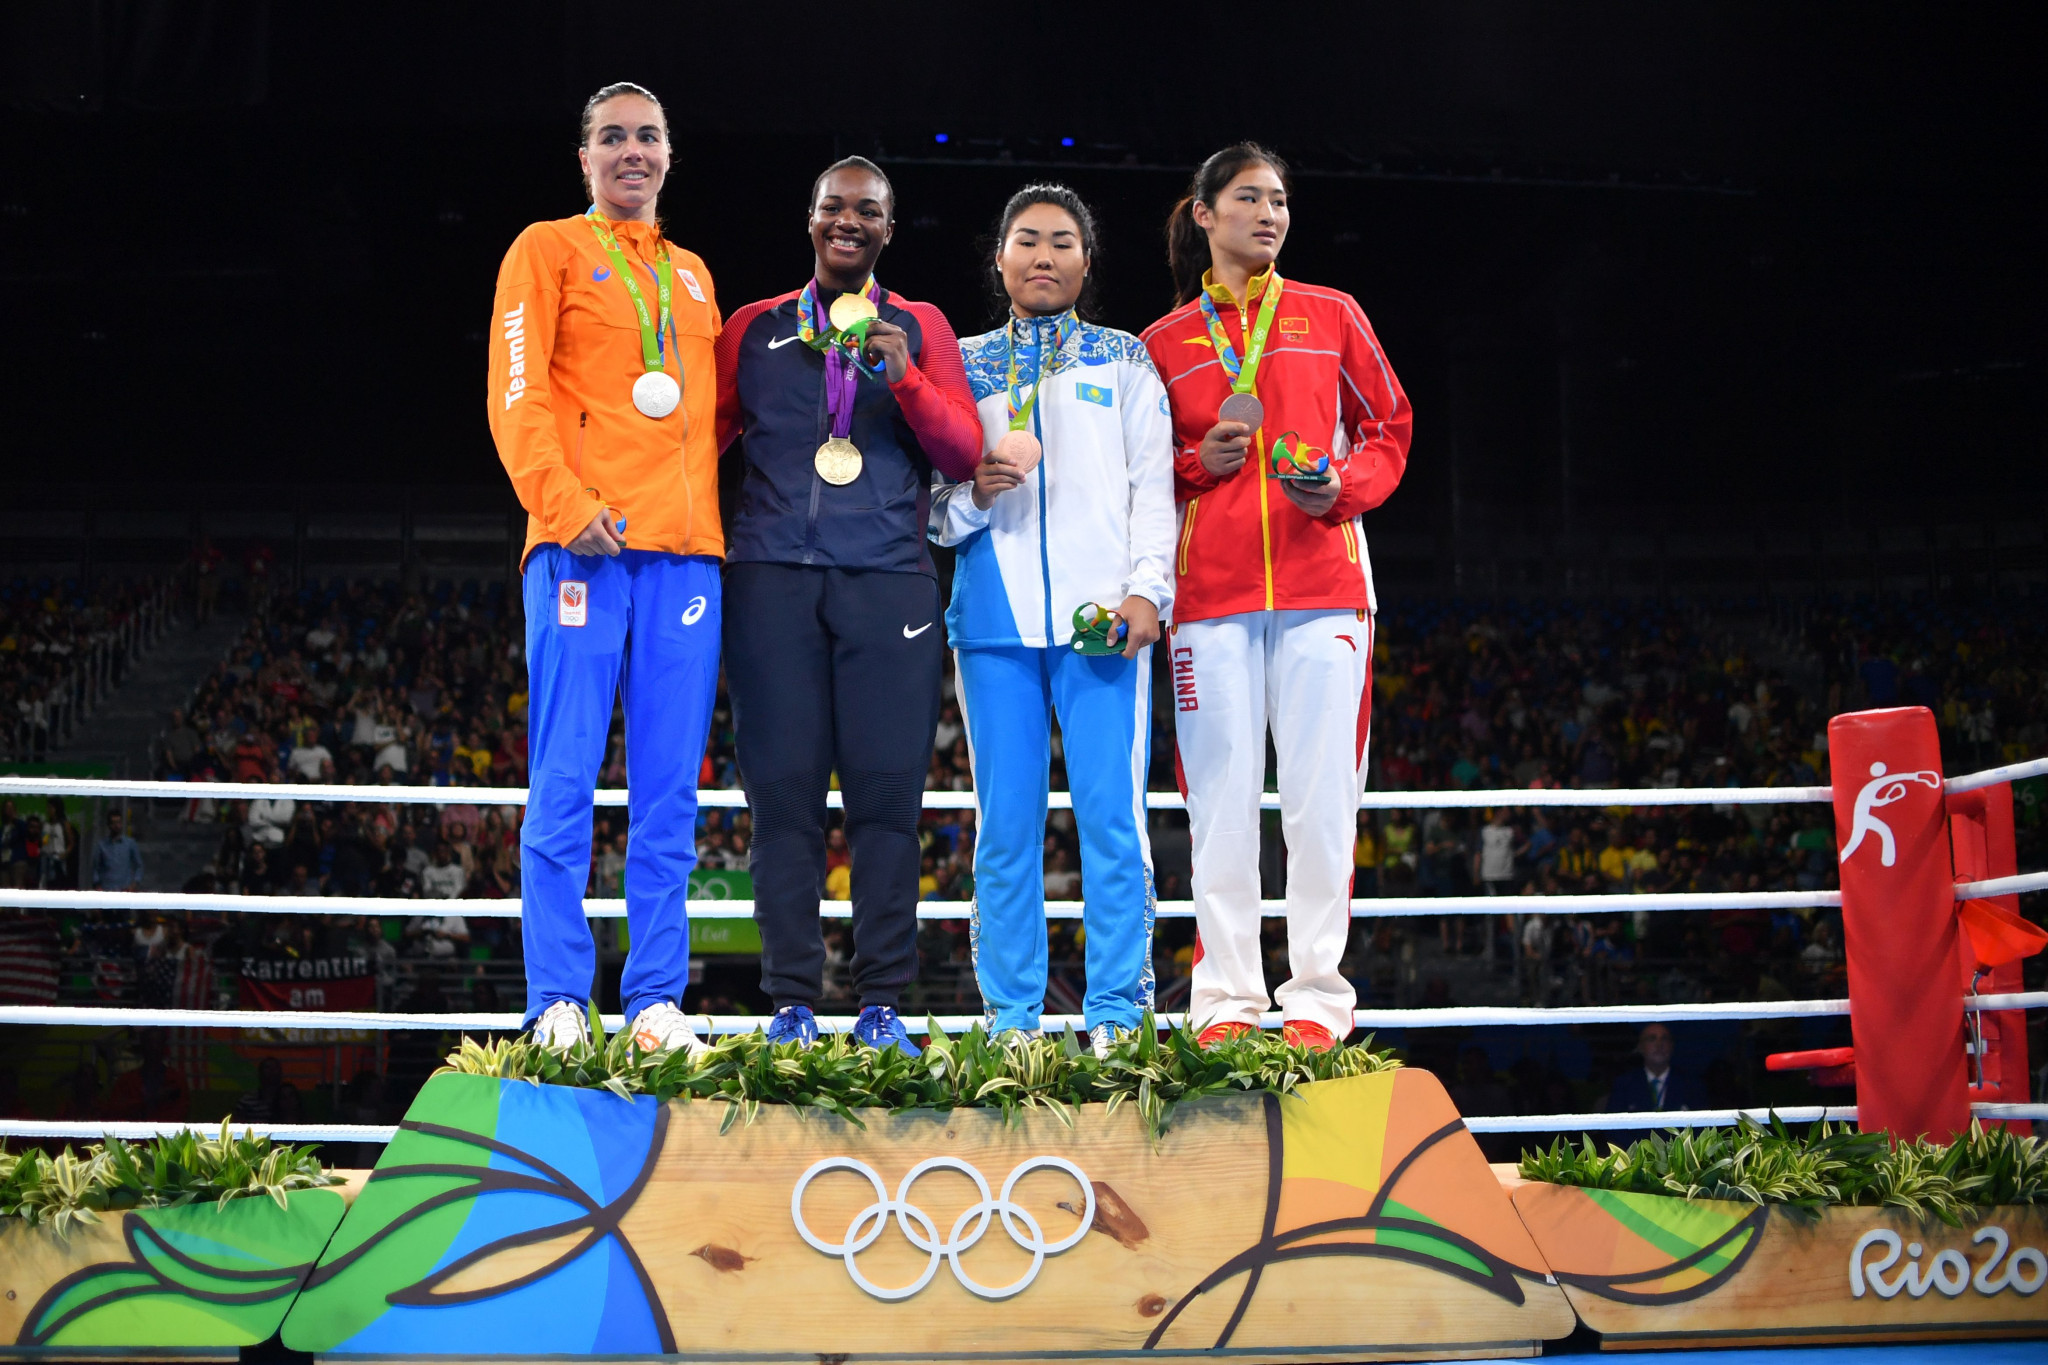 More medals will be handed at Tokyo 2020 in response to a positive COVID-19 test denying an athlete the chance to contest a gold medal match ©Getty Images